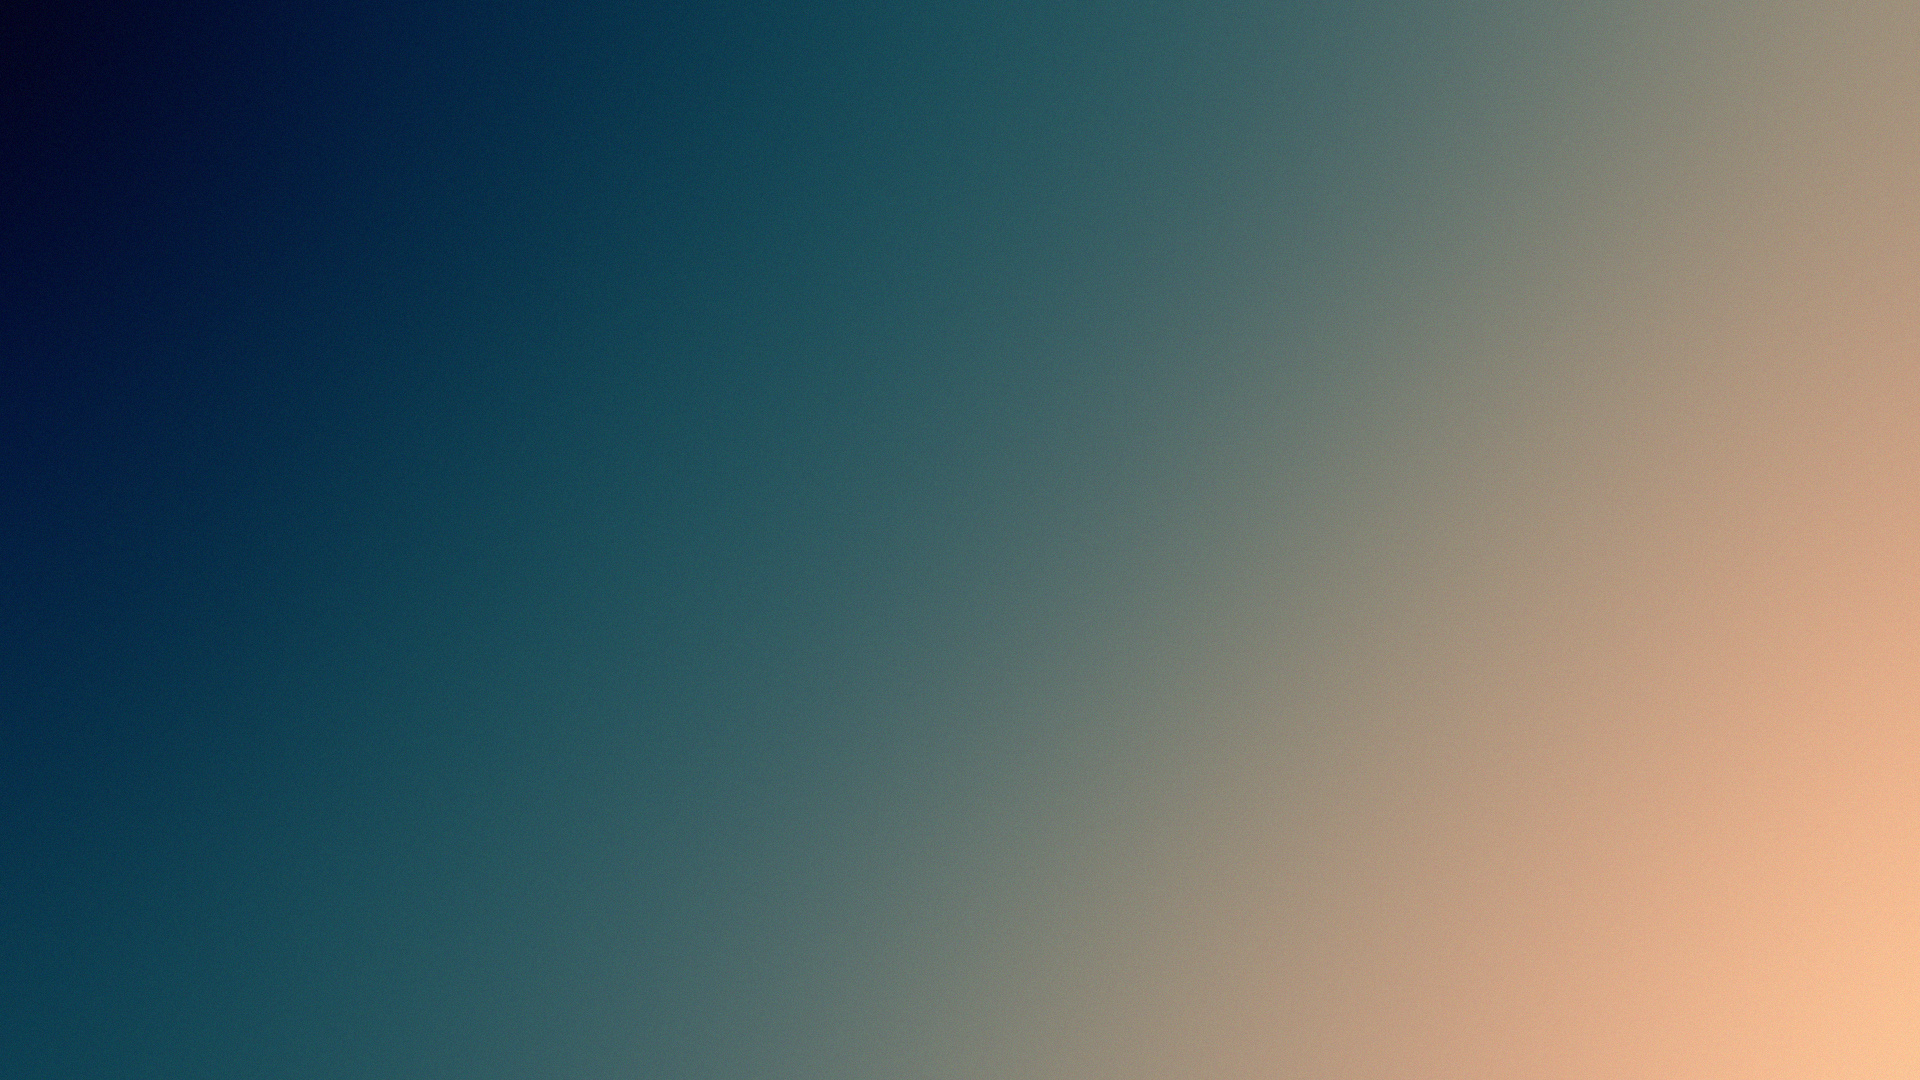 Gradient wallpaper for pc